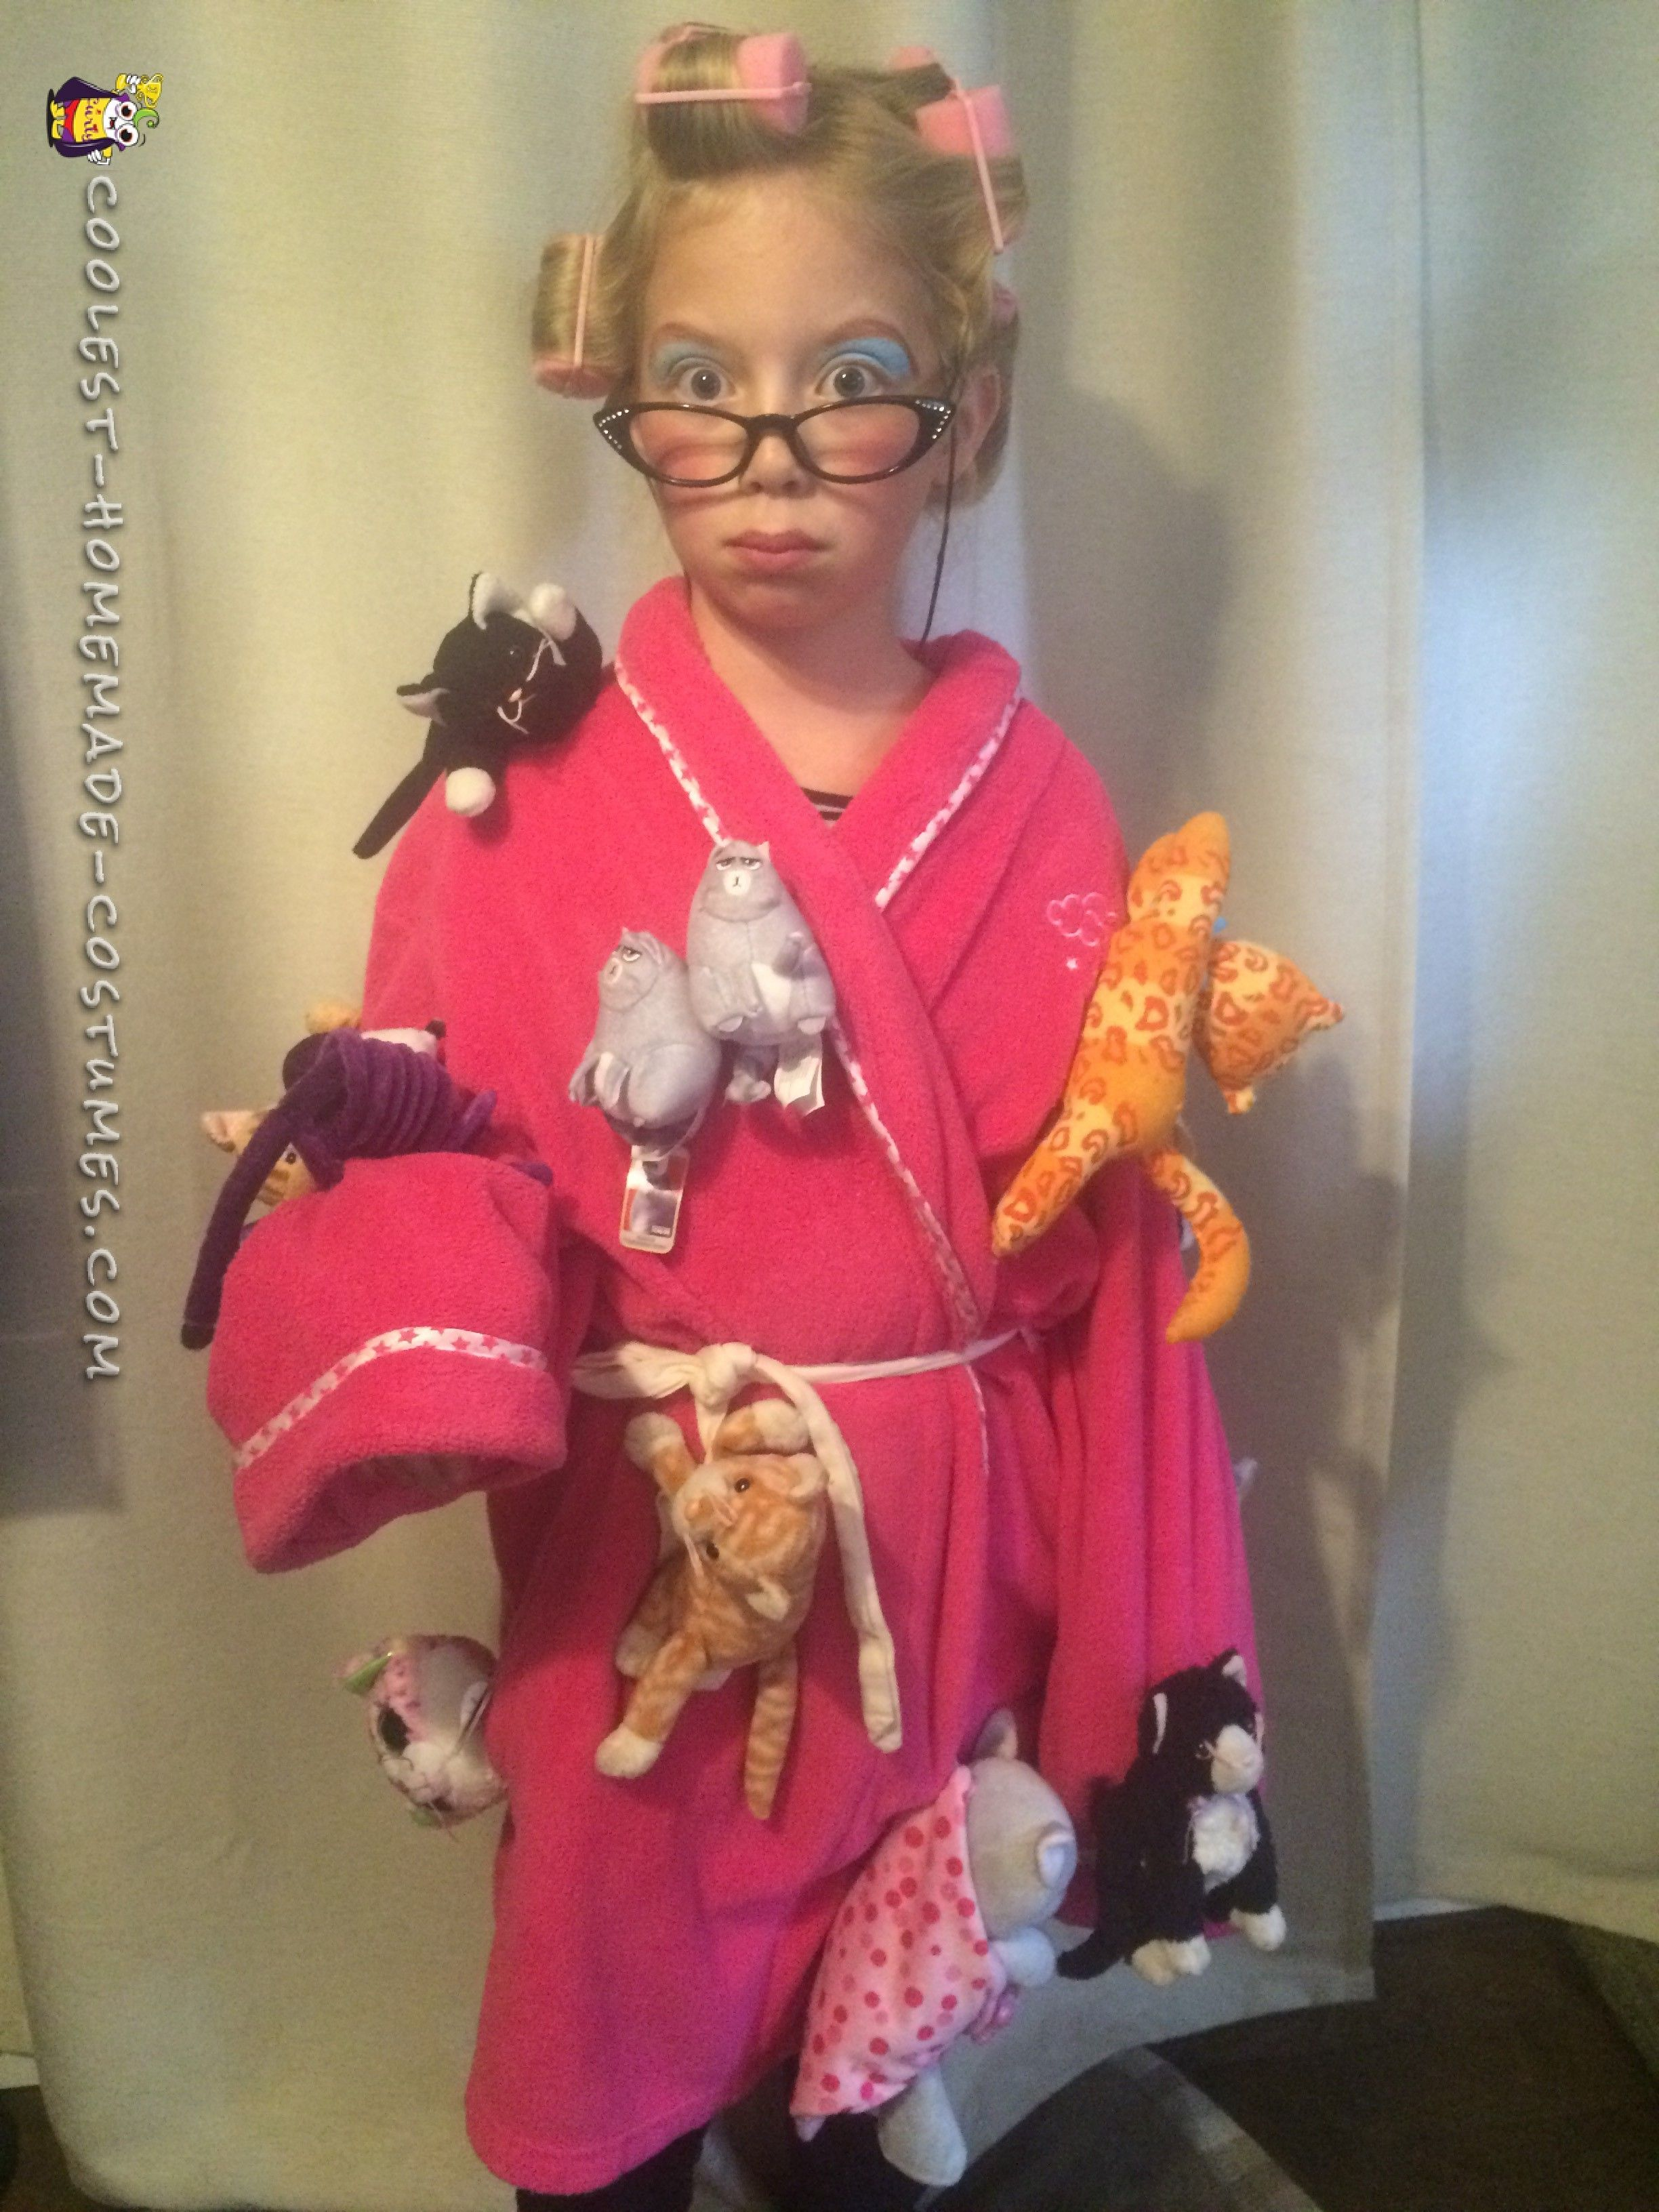 Every year, there's that one superhero film, hit tv show or viral meme that inspires everyone's costume ideas when halloween rolls around. 540 Halloween Costumes For Kids Ideas Halloween Costumes For Kids Homemade Costumes Halloween Costume Contest